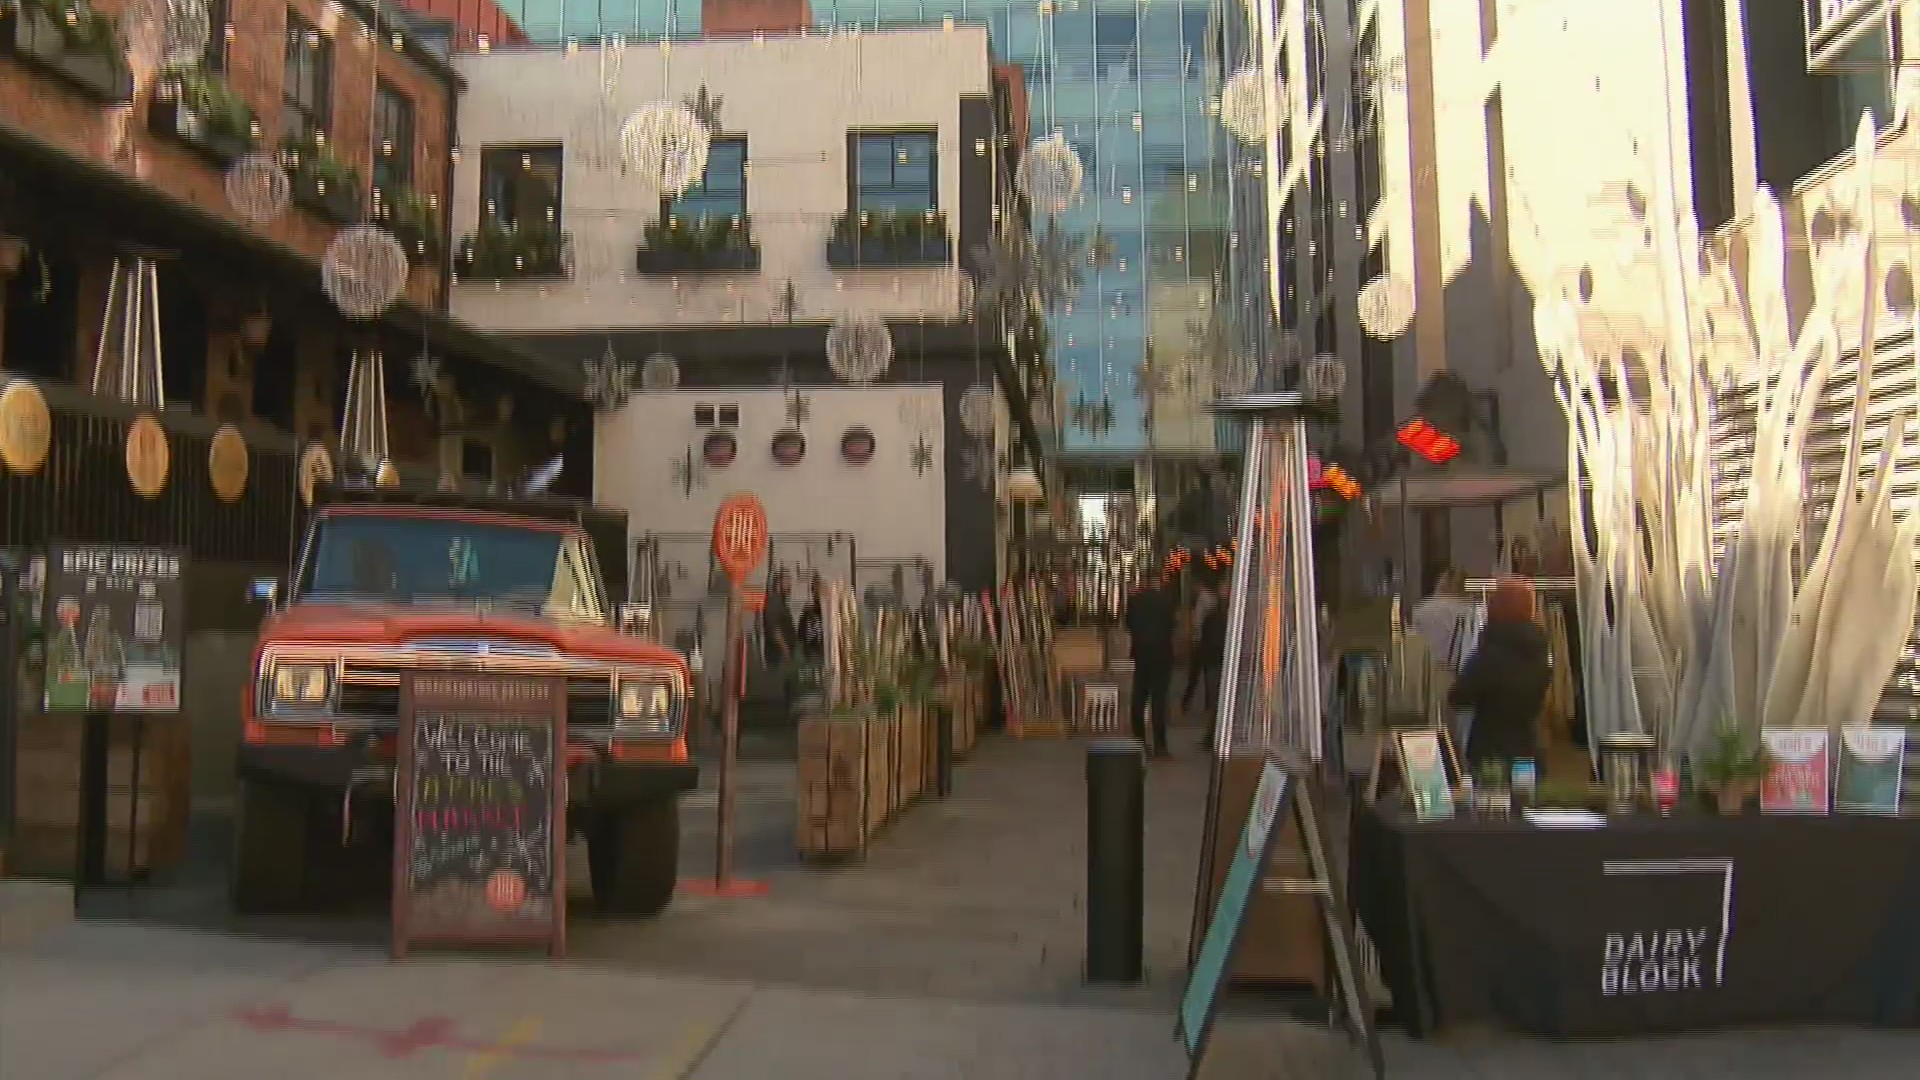 news.yahoo.com: The Dairy Block Hosting European Style Market For The Holidays